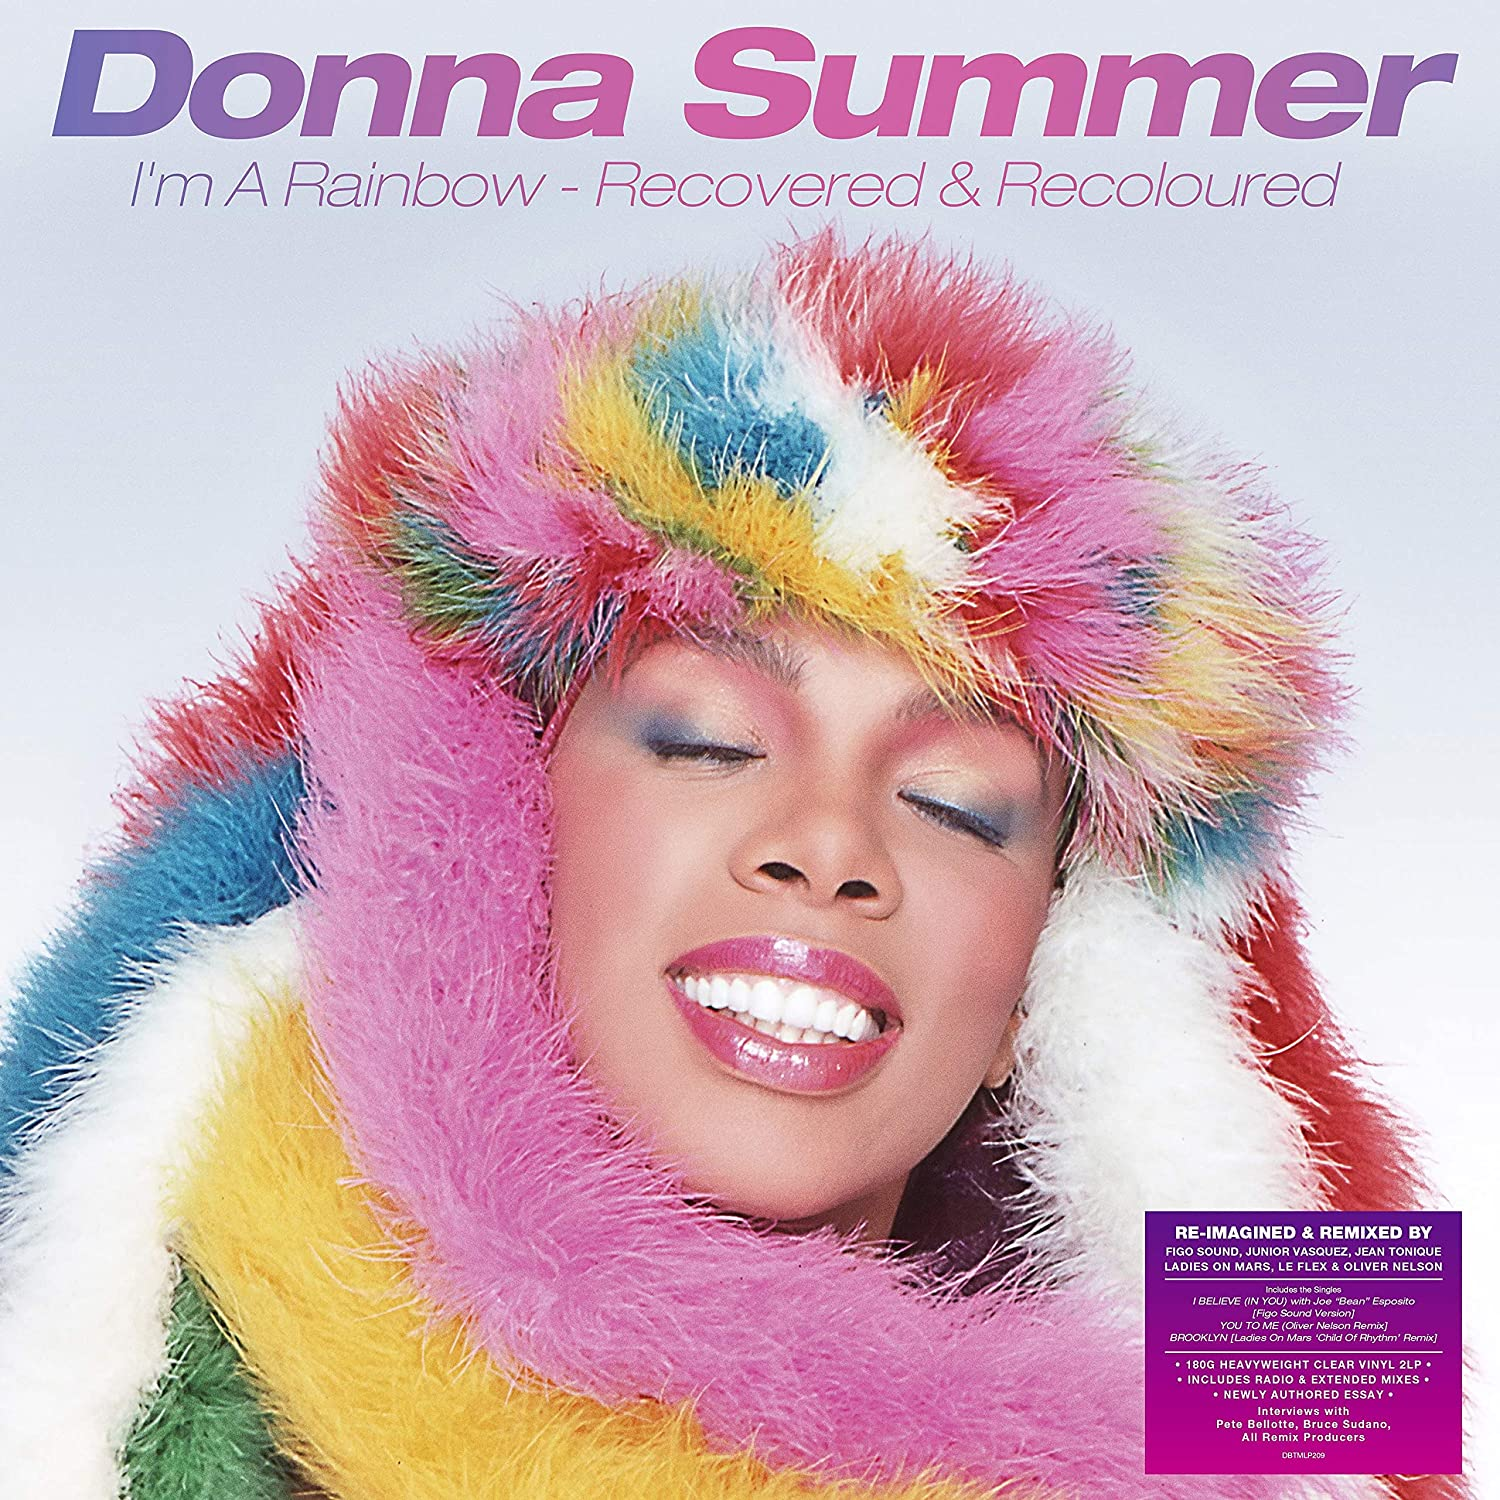 Donna Summer / I'm A Rainbow: Recovered & Recoloured 2LP and CD reissue